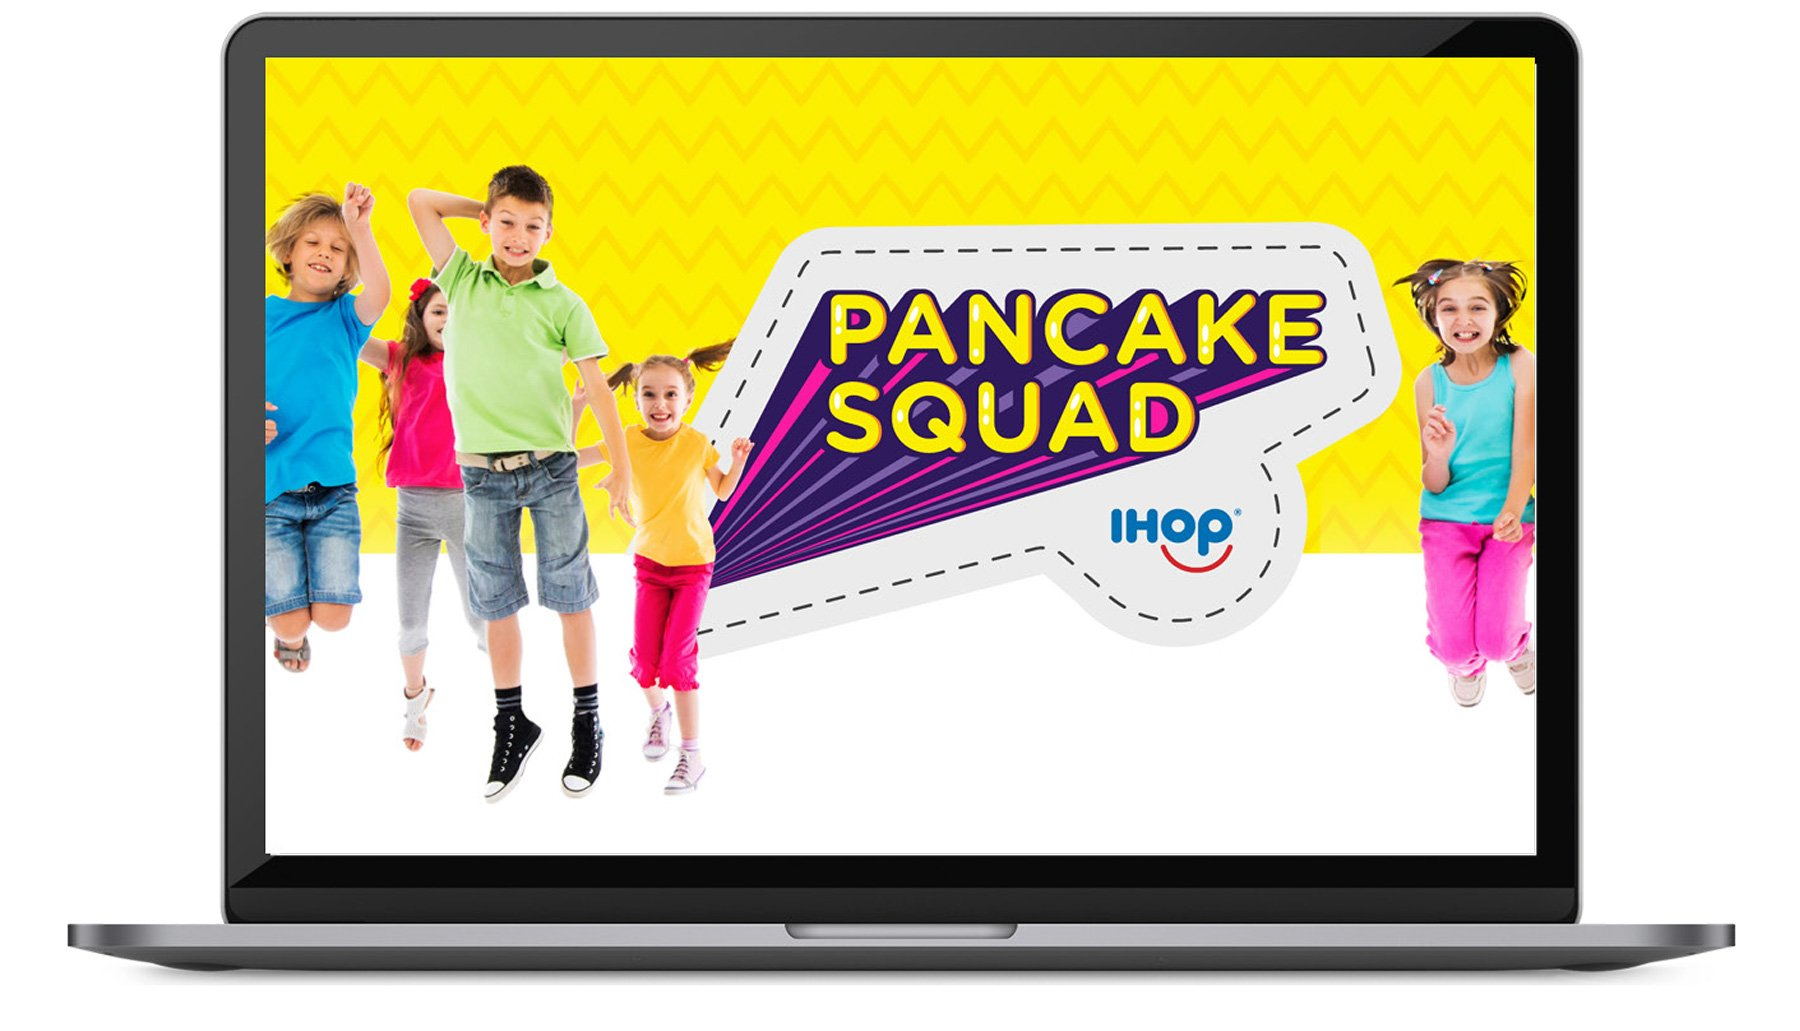 IHOP Pancake Squad Kids Program Family Custom Photography Lifestyle Food Photography Food stylist technology app development Augmented Reality Games